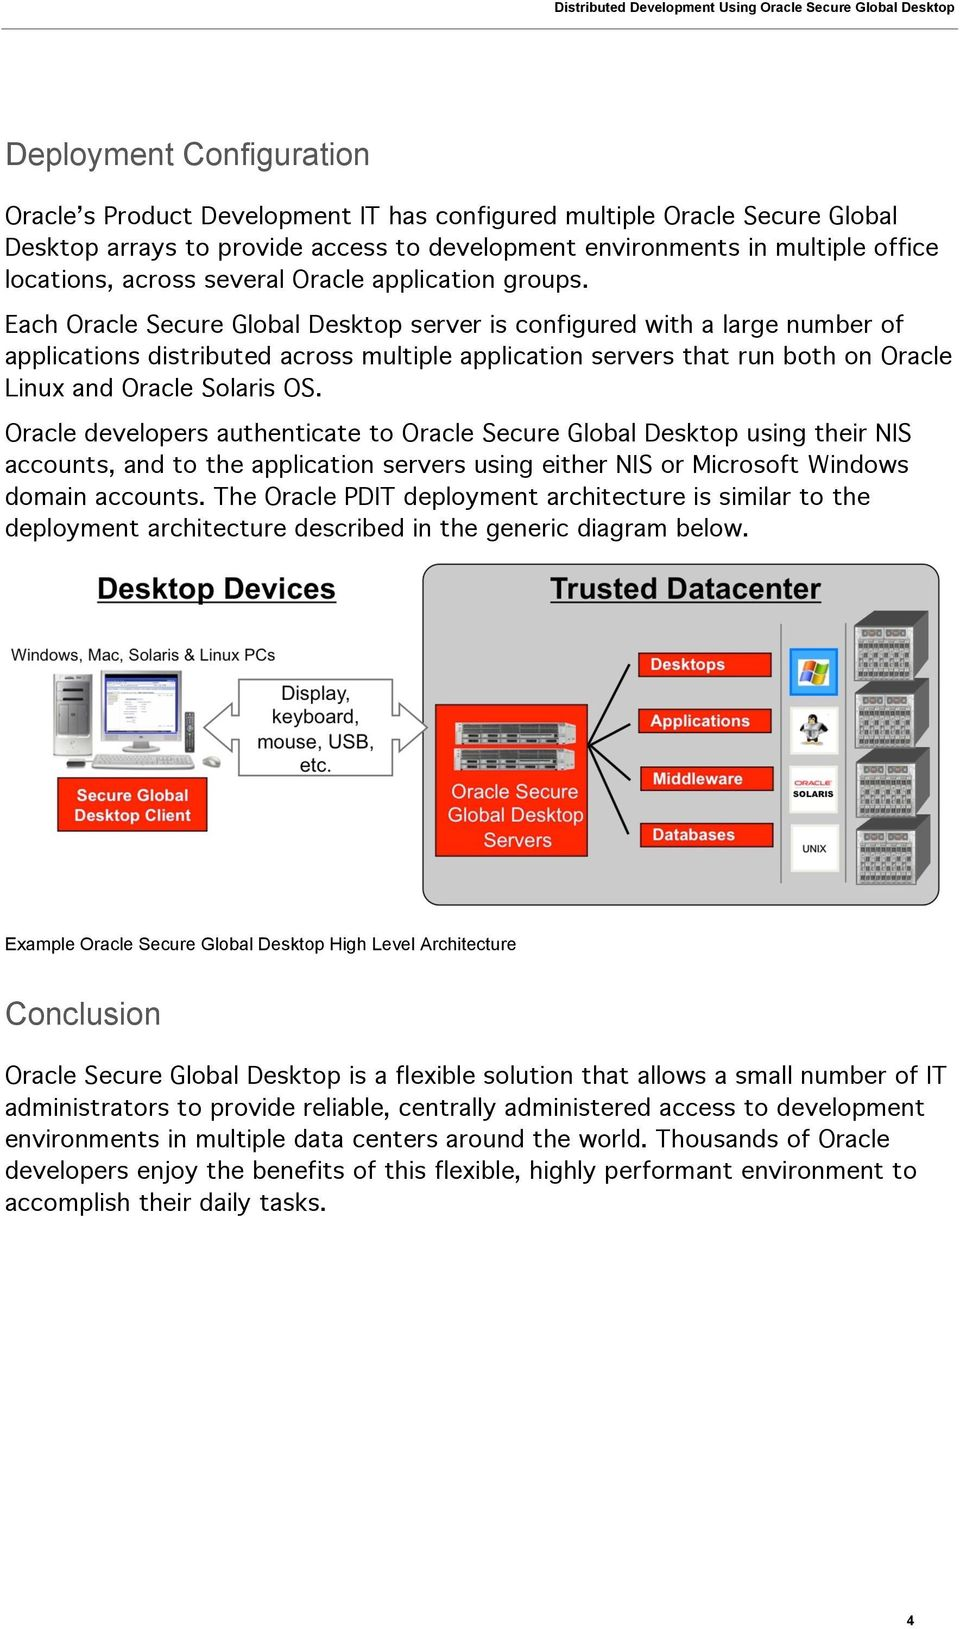 Each Oracle Secure Global Desktop server is configured with a large number of applications distributed across multiple application servers that run both on Oracle Linux and Oracle Solaris OS.